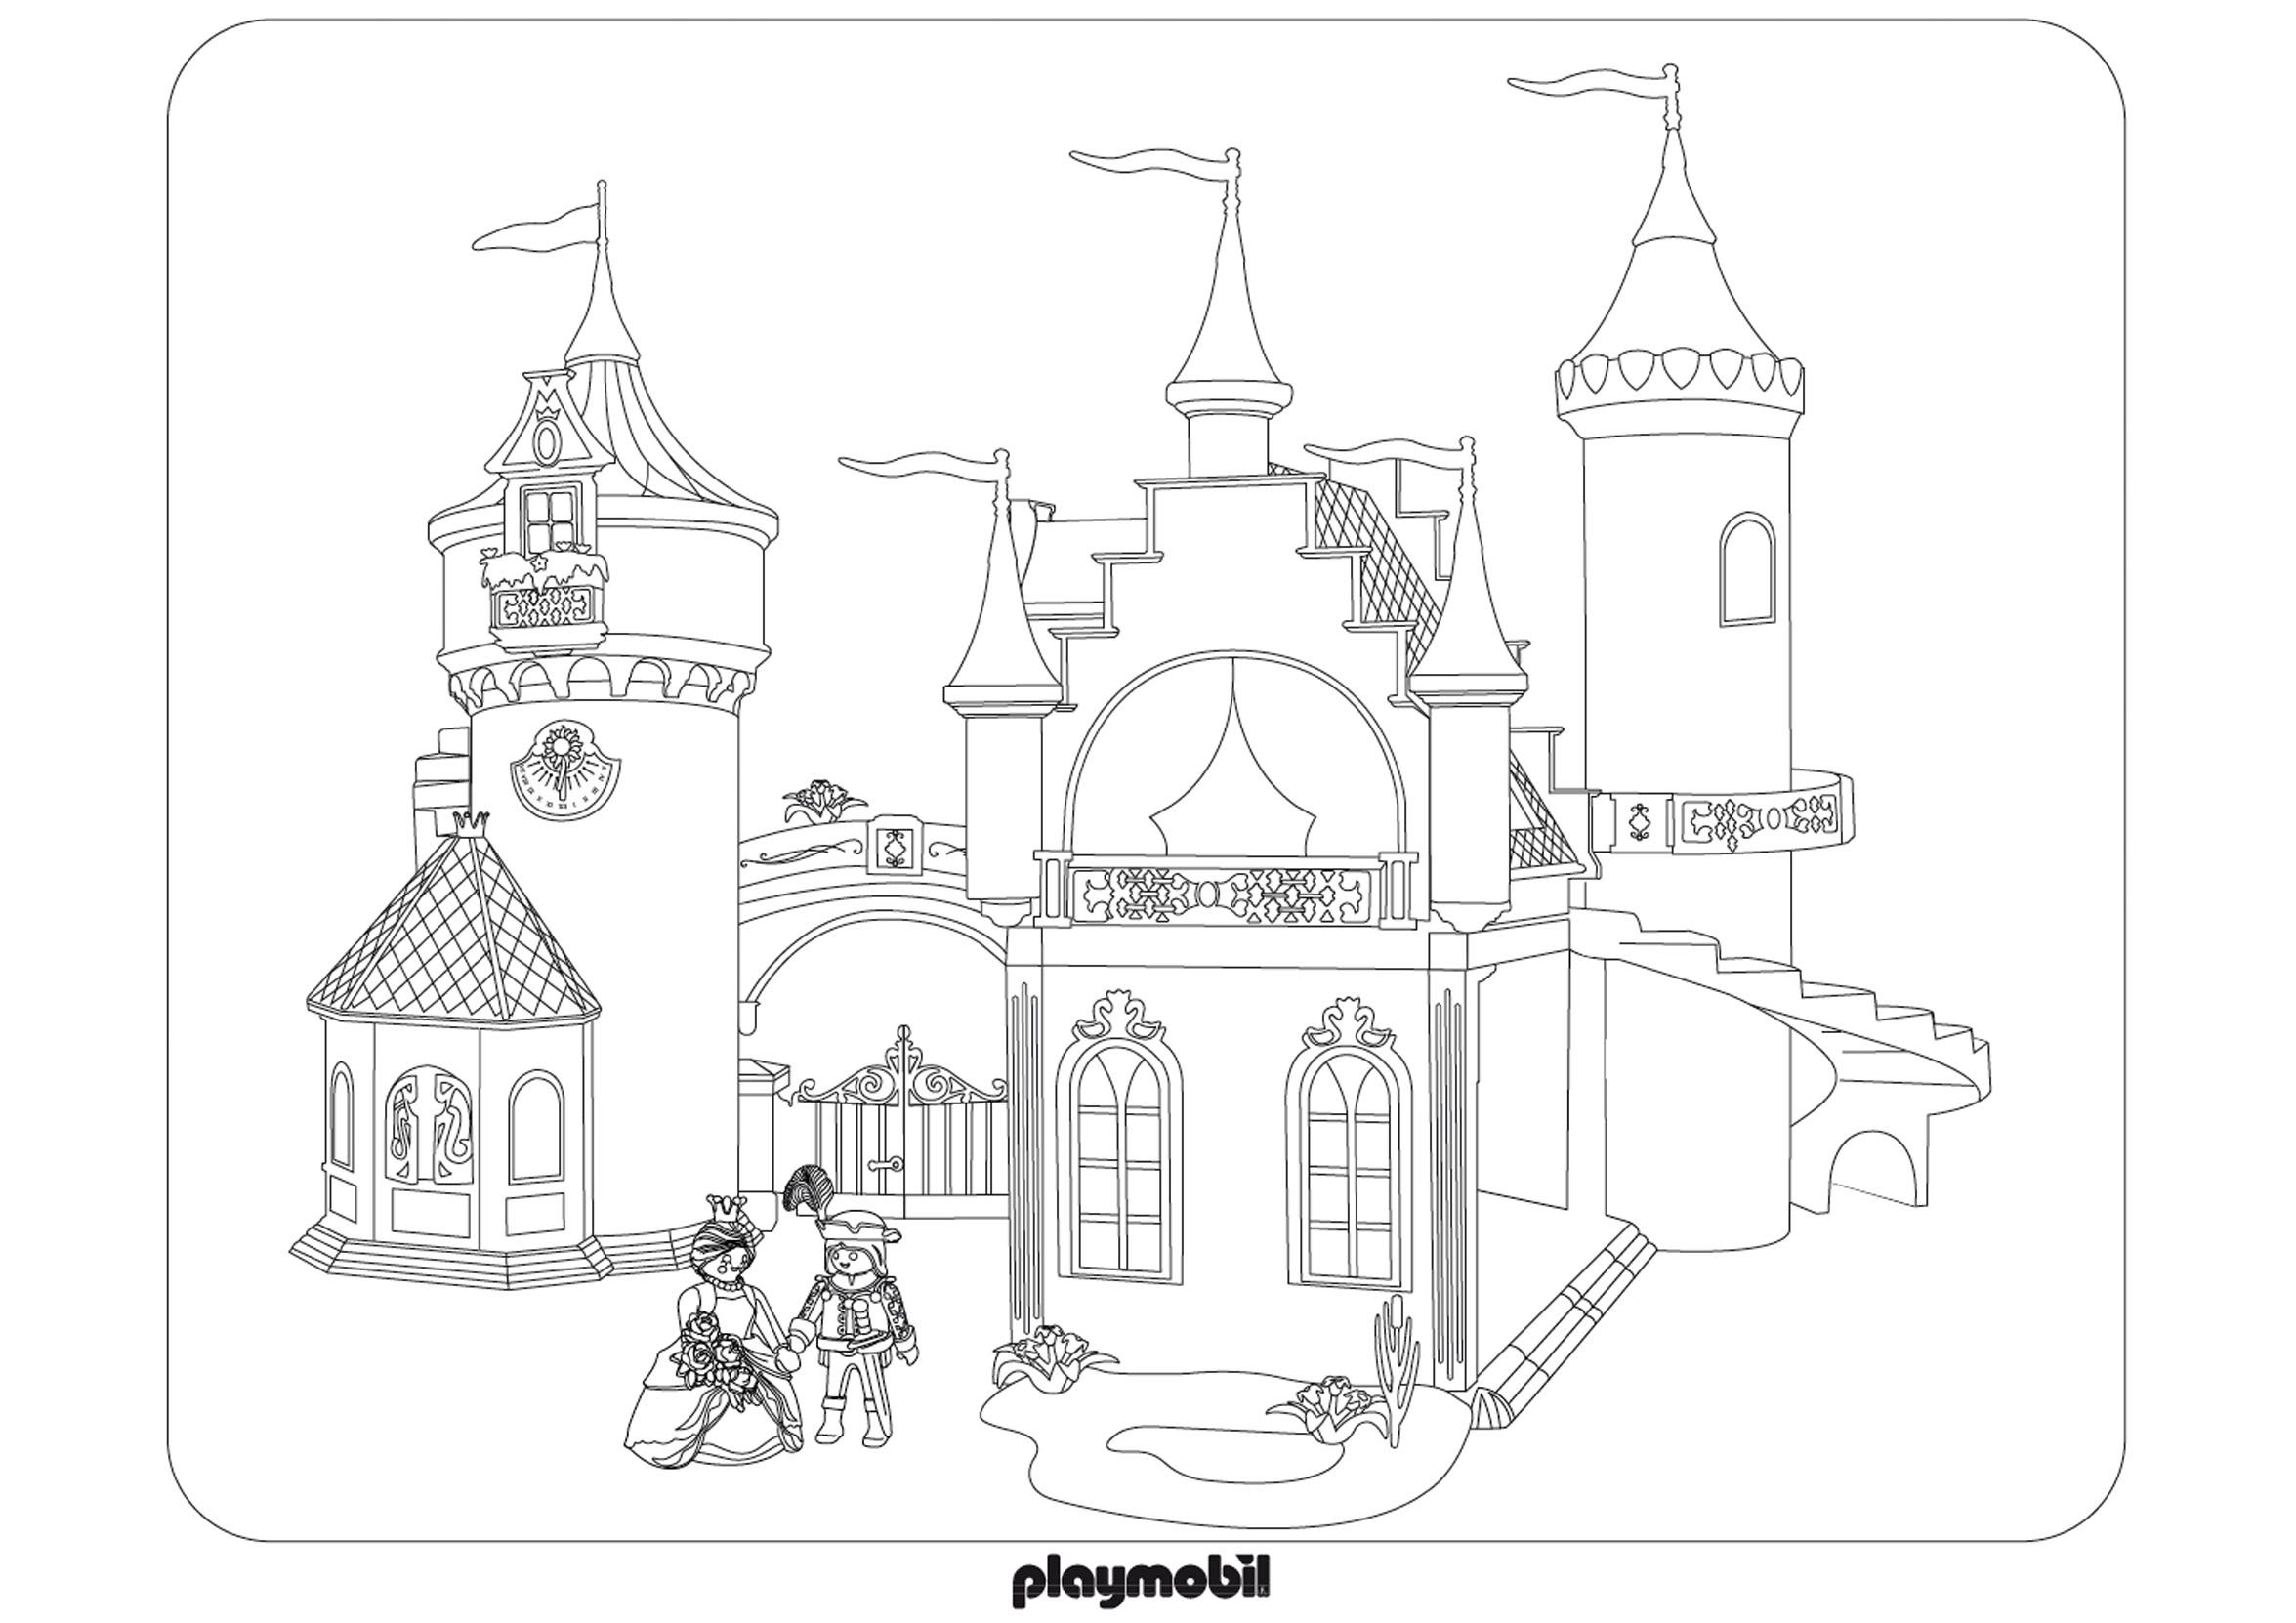 Ausmalbilder Piraten Playmobil : Playmobil Coloring Google Search Printables And Templates